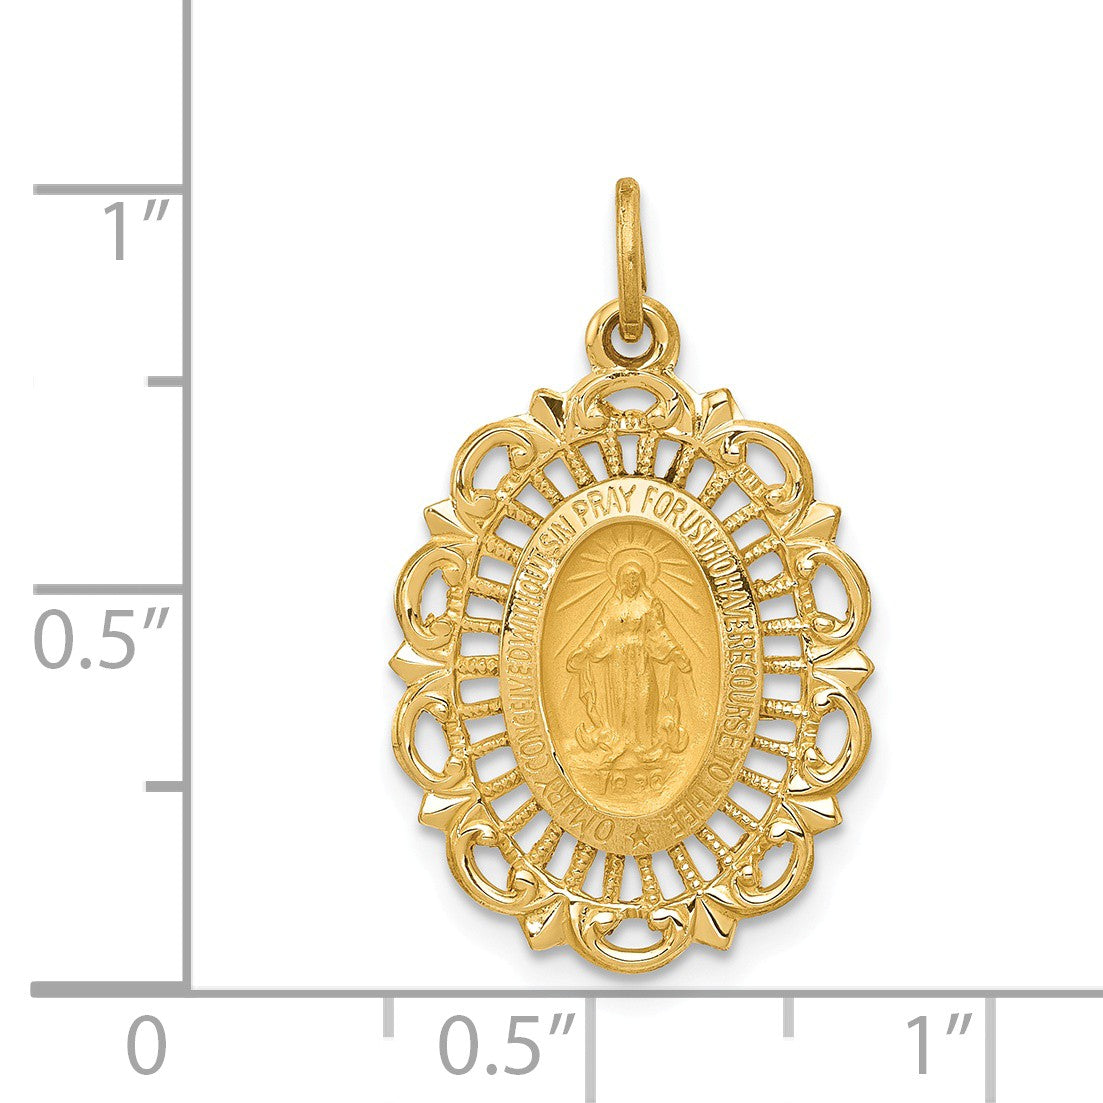 Alternate view of the 14k Yellow Gold, Oval Filigree Miraculous Medal Charm, 15 x 25mm by The Black Bow Jewelry Co.